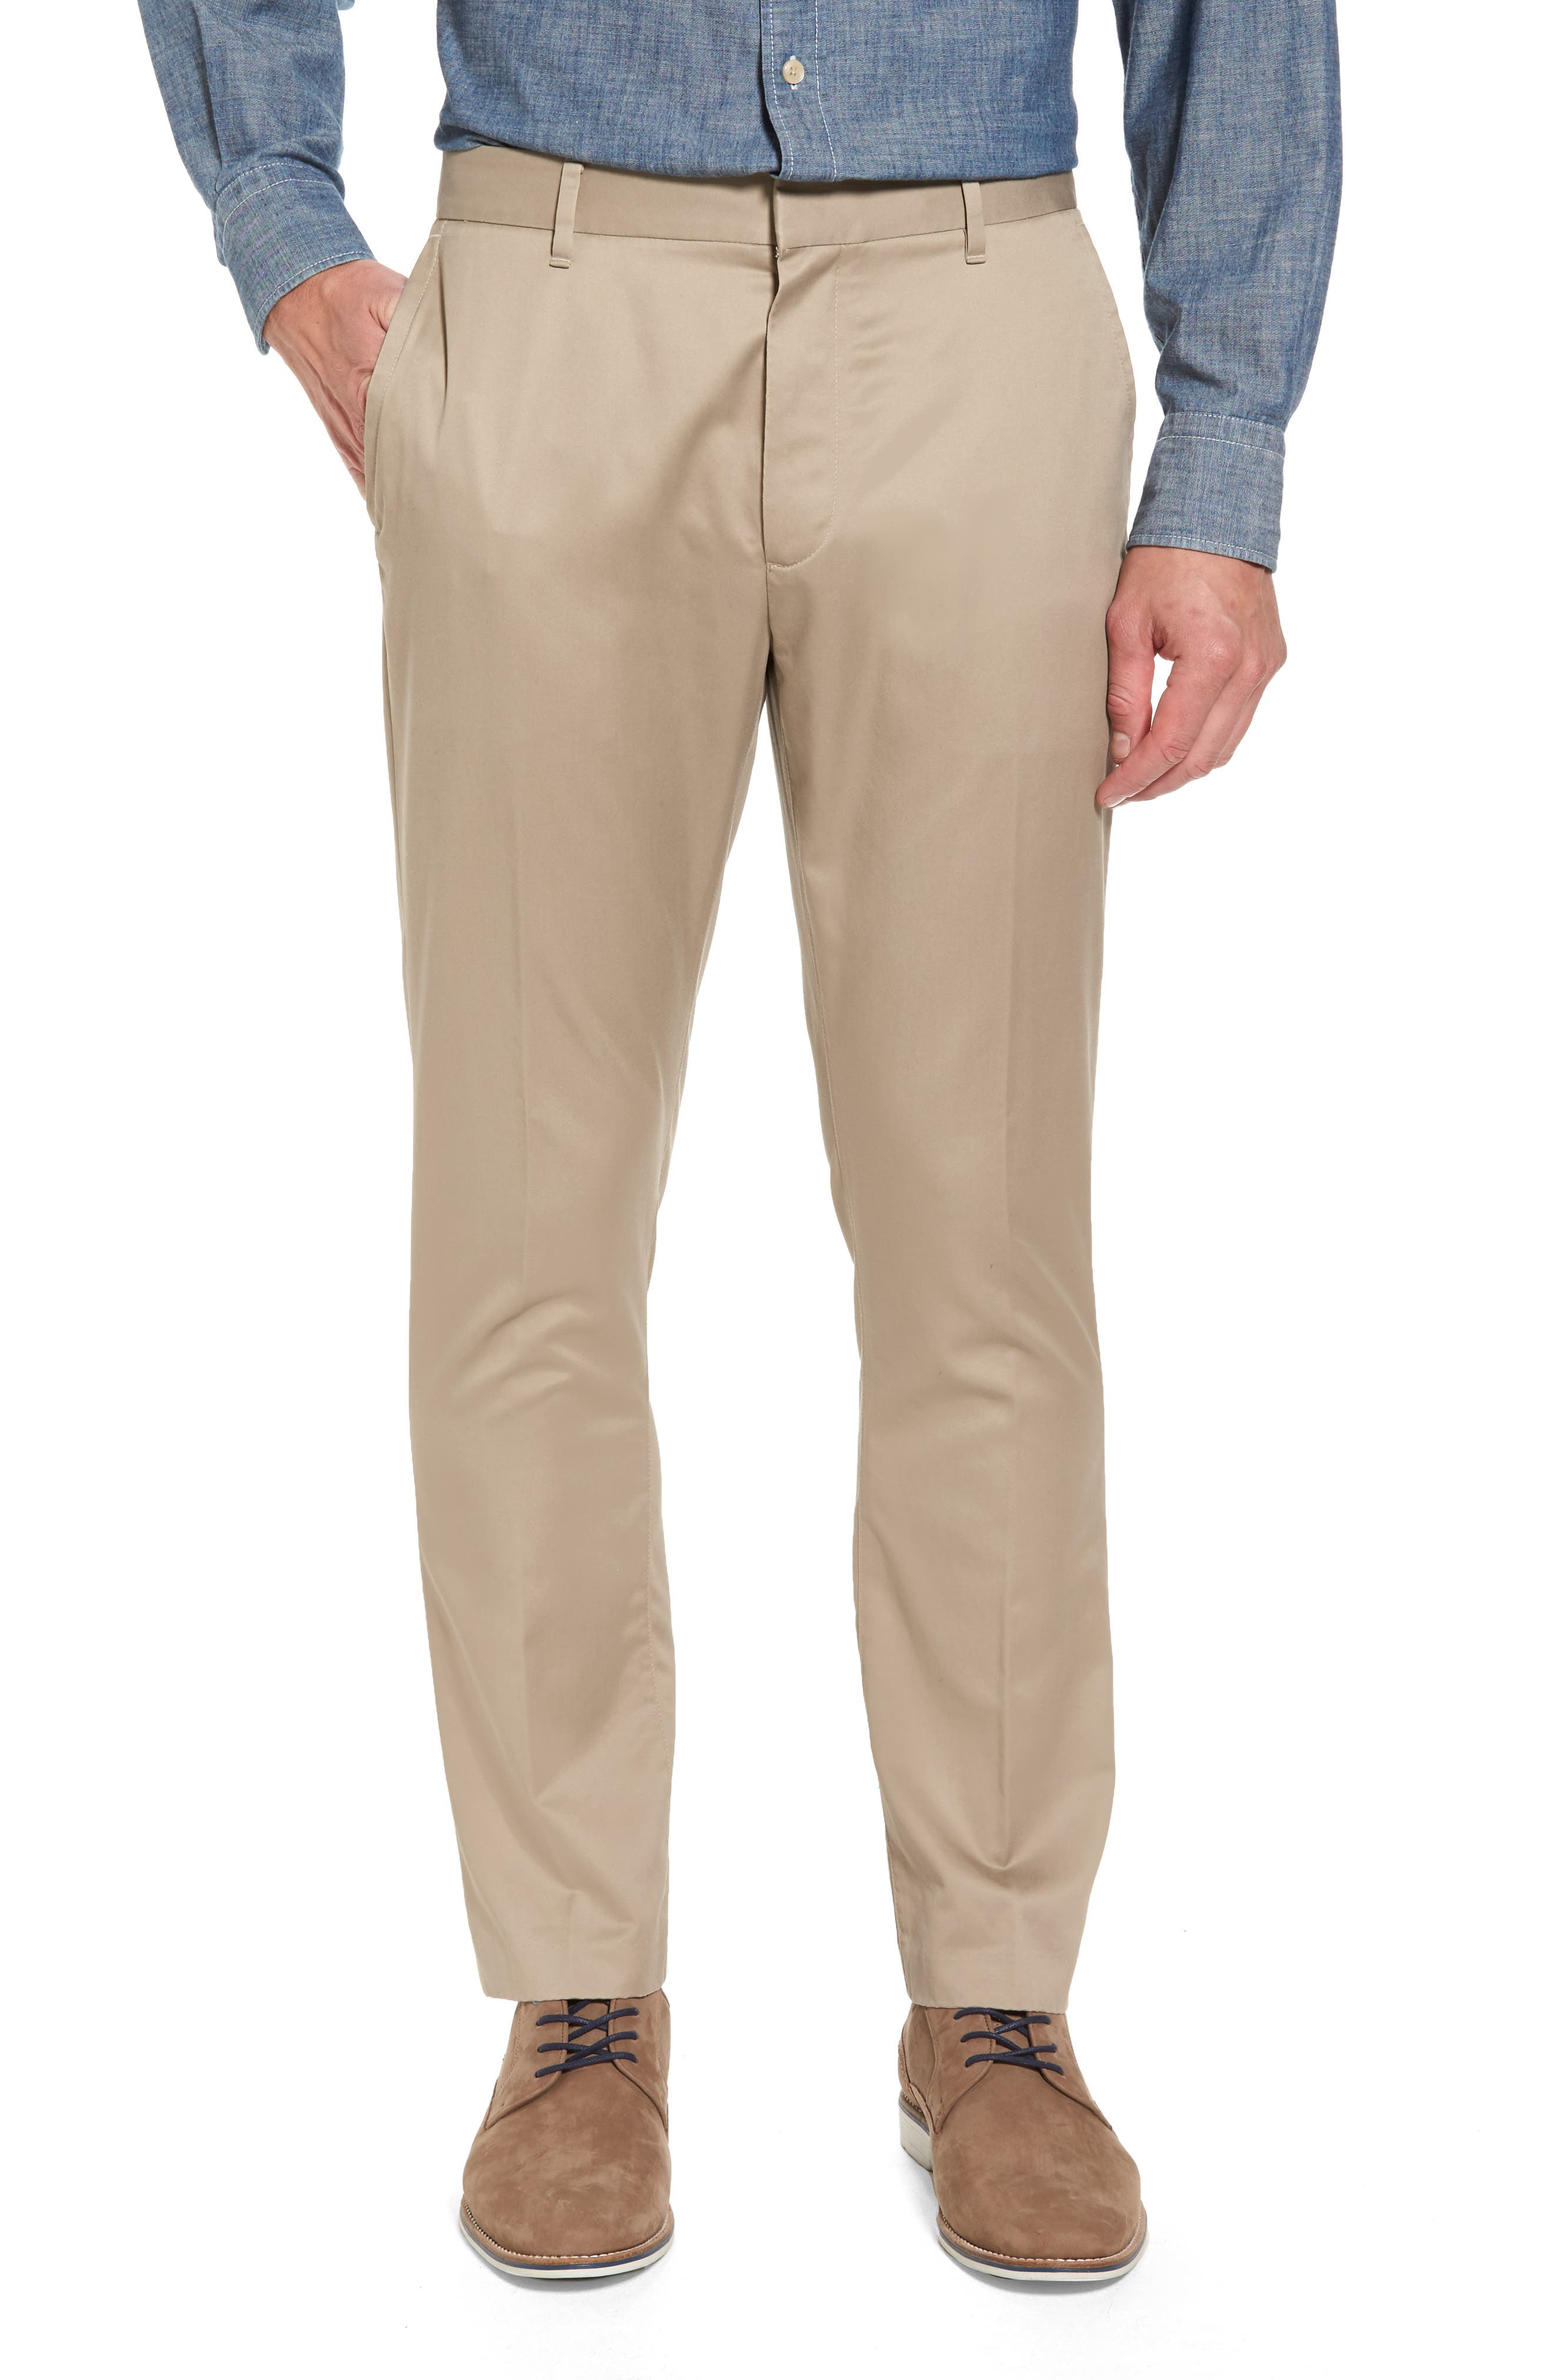 Alternate Image 1 Selected - Bonobos 'Weekday Warriors' Non-Iron Tailored Cotton Chinos